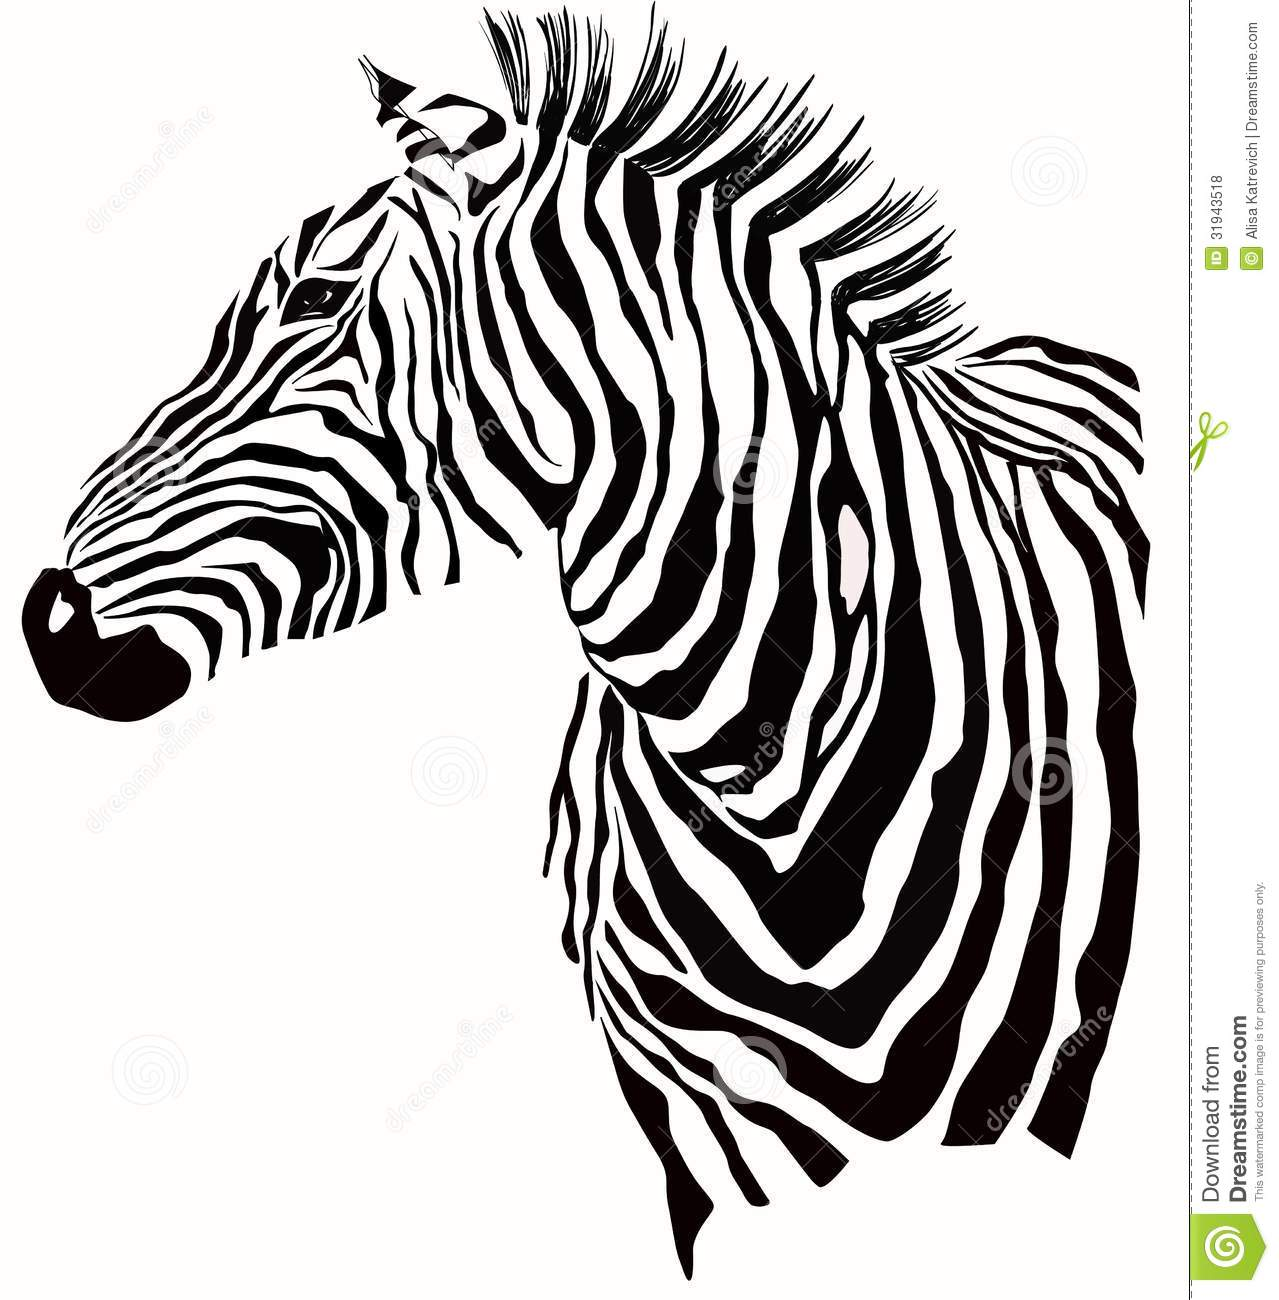 Animal Illustration Of Zebra Silhouette Stock Vector